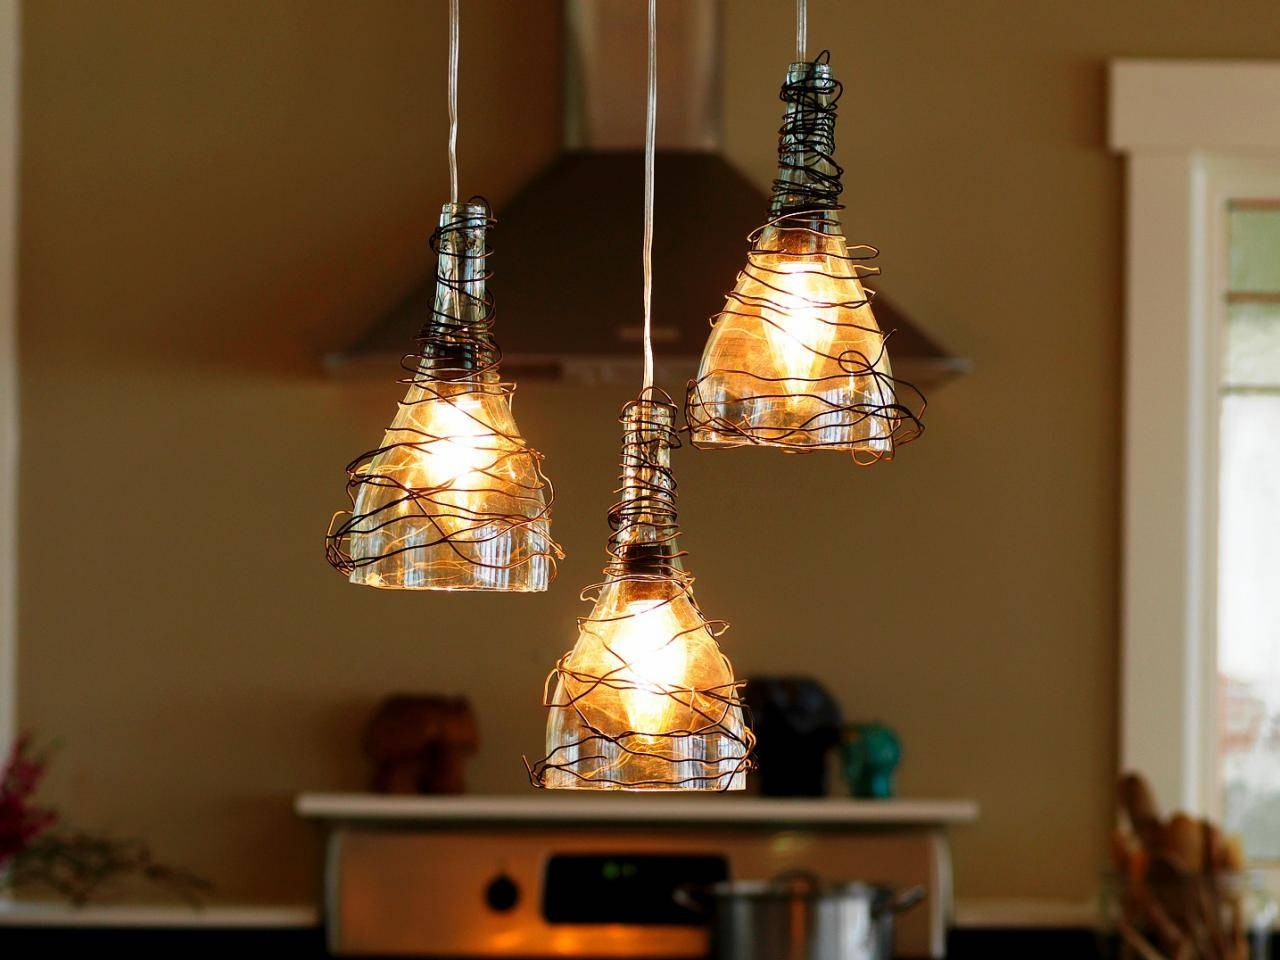 Upcycle Wine Bottle Into Pendant Light Fixtures | How-Tos | Diy inside Wine Bottle Pendants (Image 12 of 15)